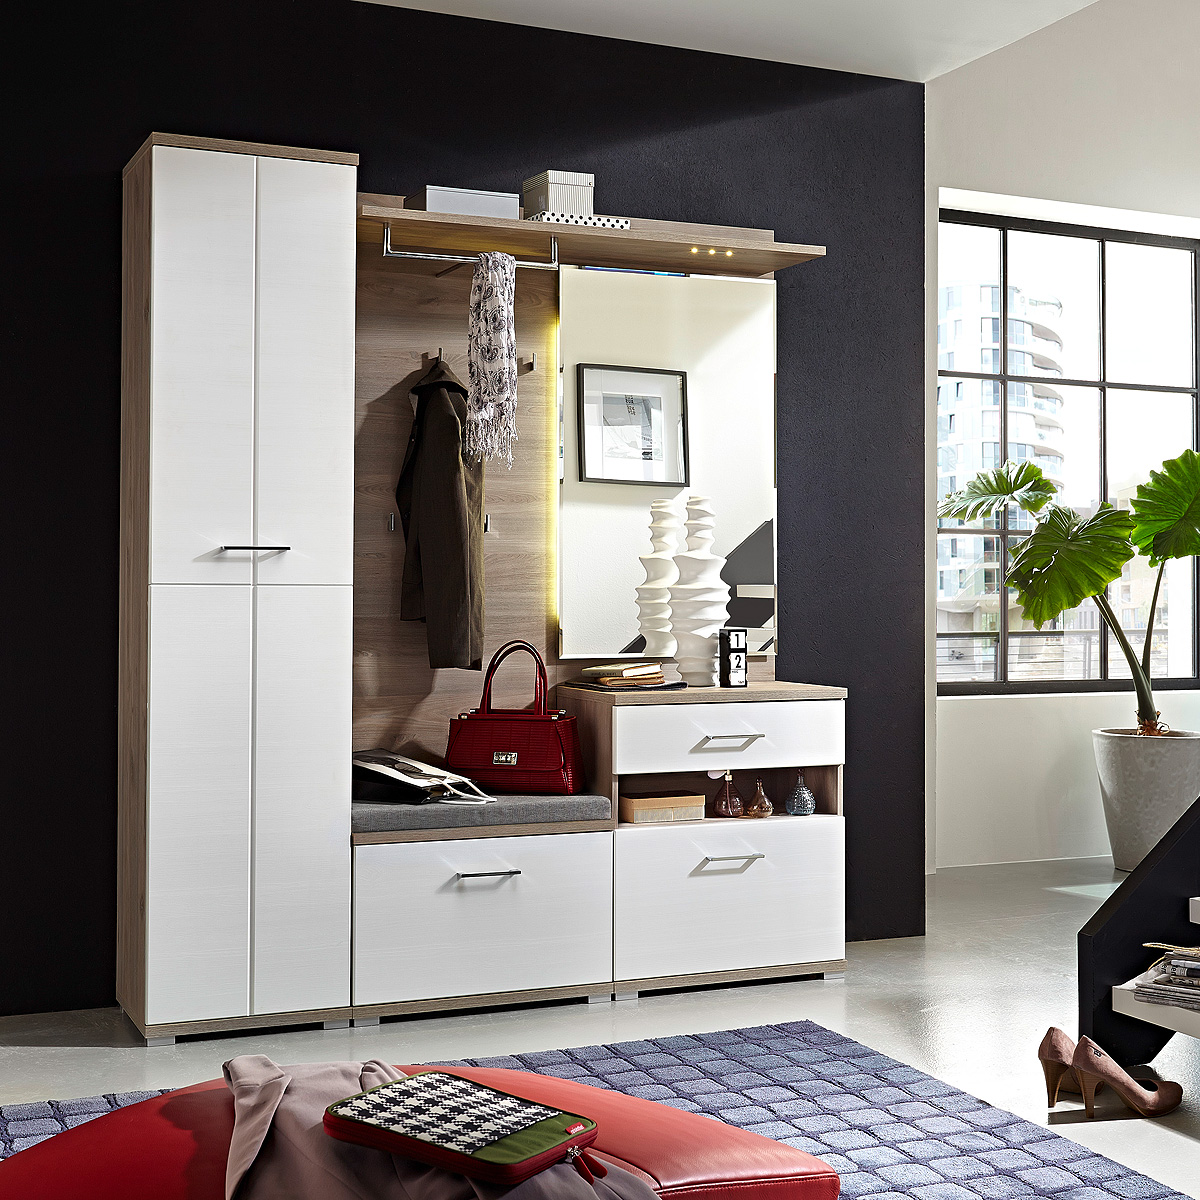 garderobe 3 set plus schuhschrank spiegel flurm bel wei. Black Bedroom Furniture Sets. Home Design Ideas